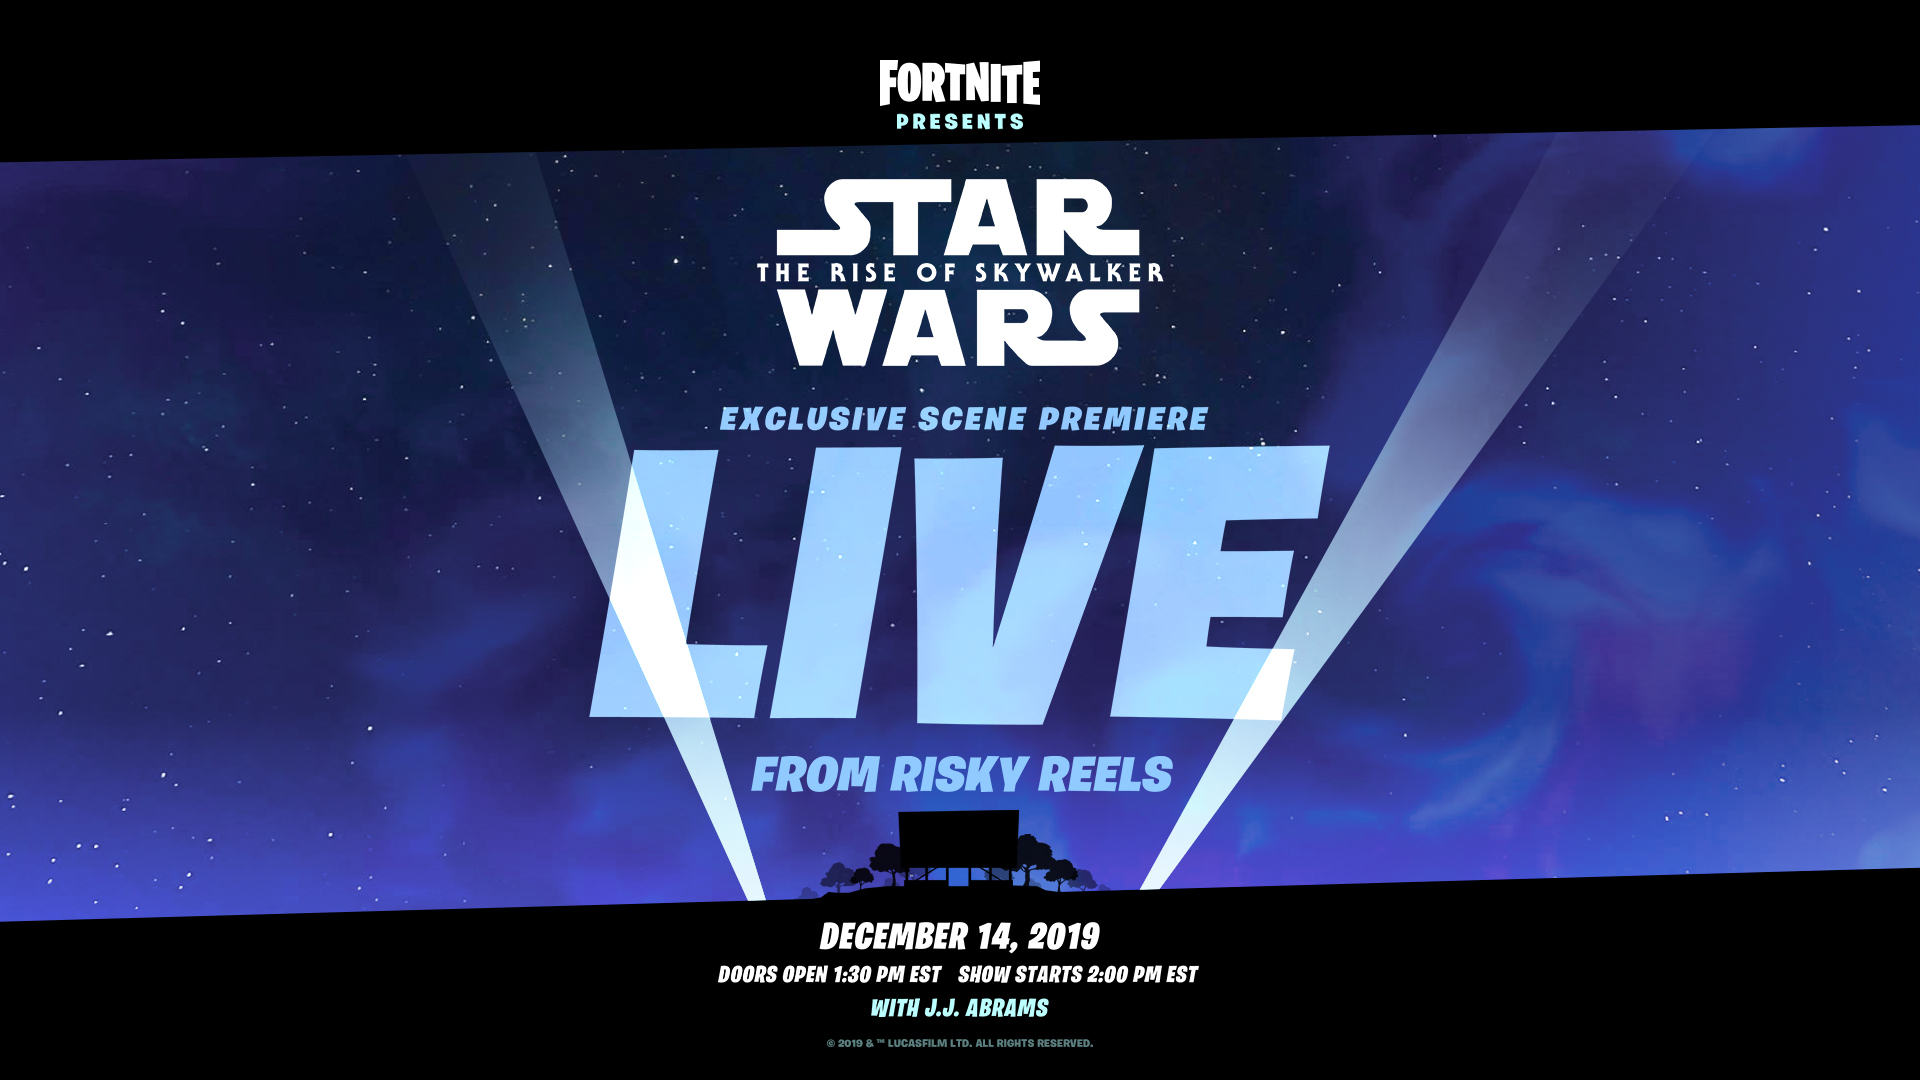 Fortnite Star Wars Event When Is It Where Is Risky Reels How To Watch The Exclusive Rise Of Skywalker Clip Gamesradar